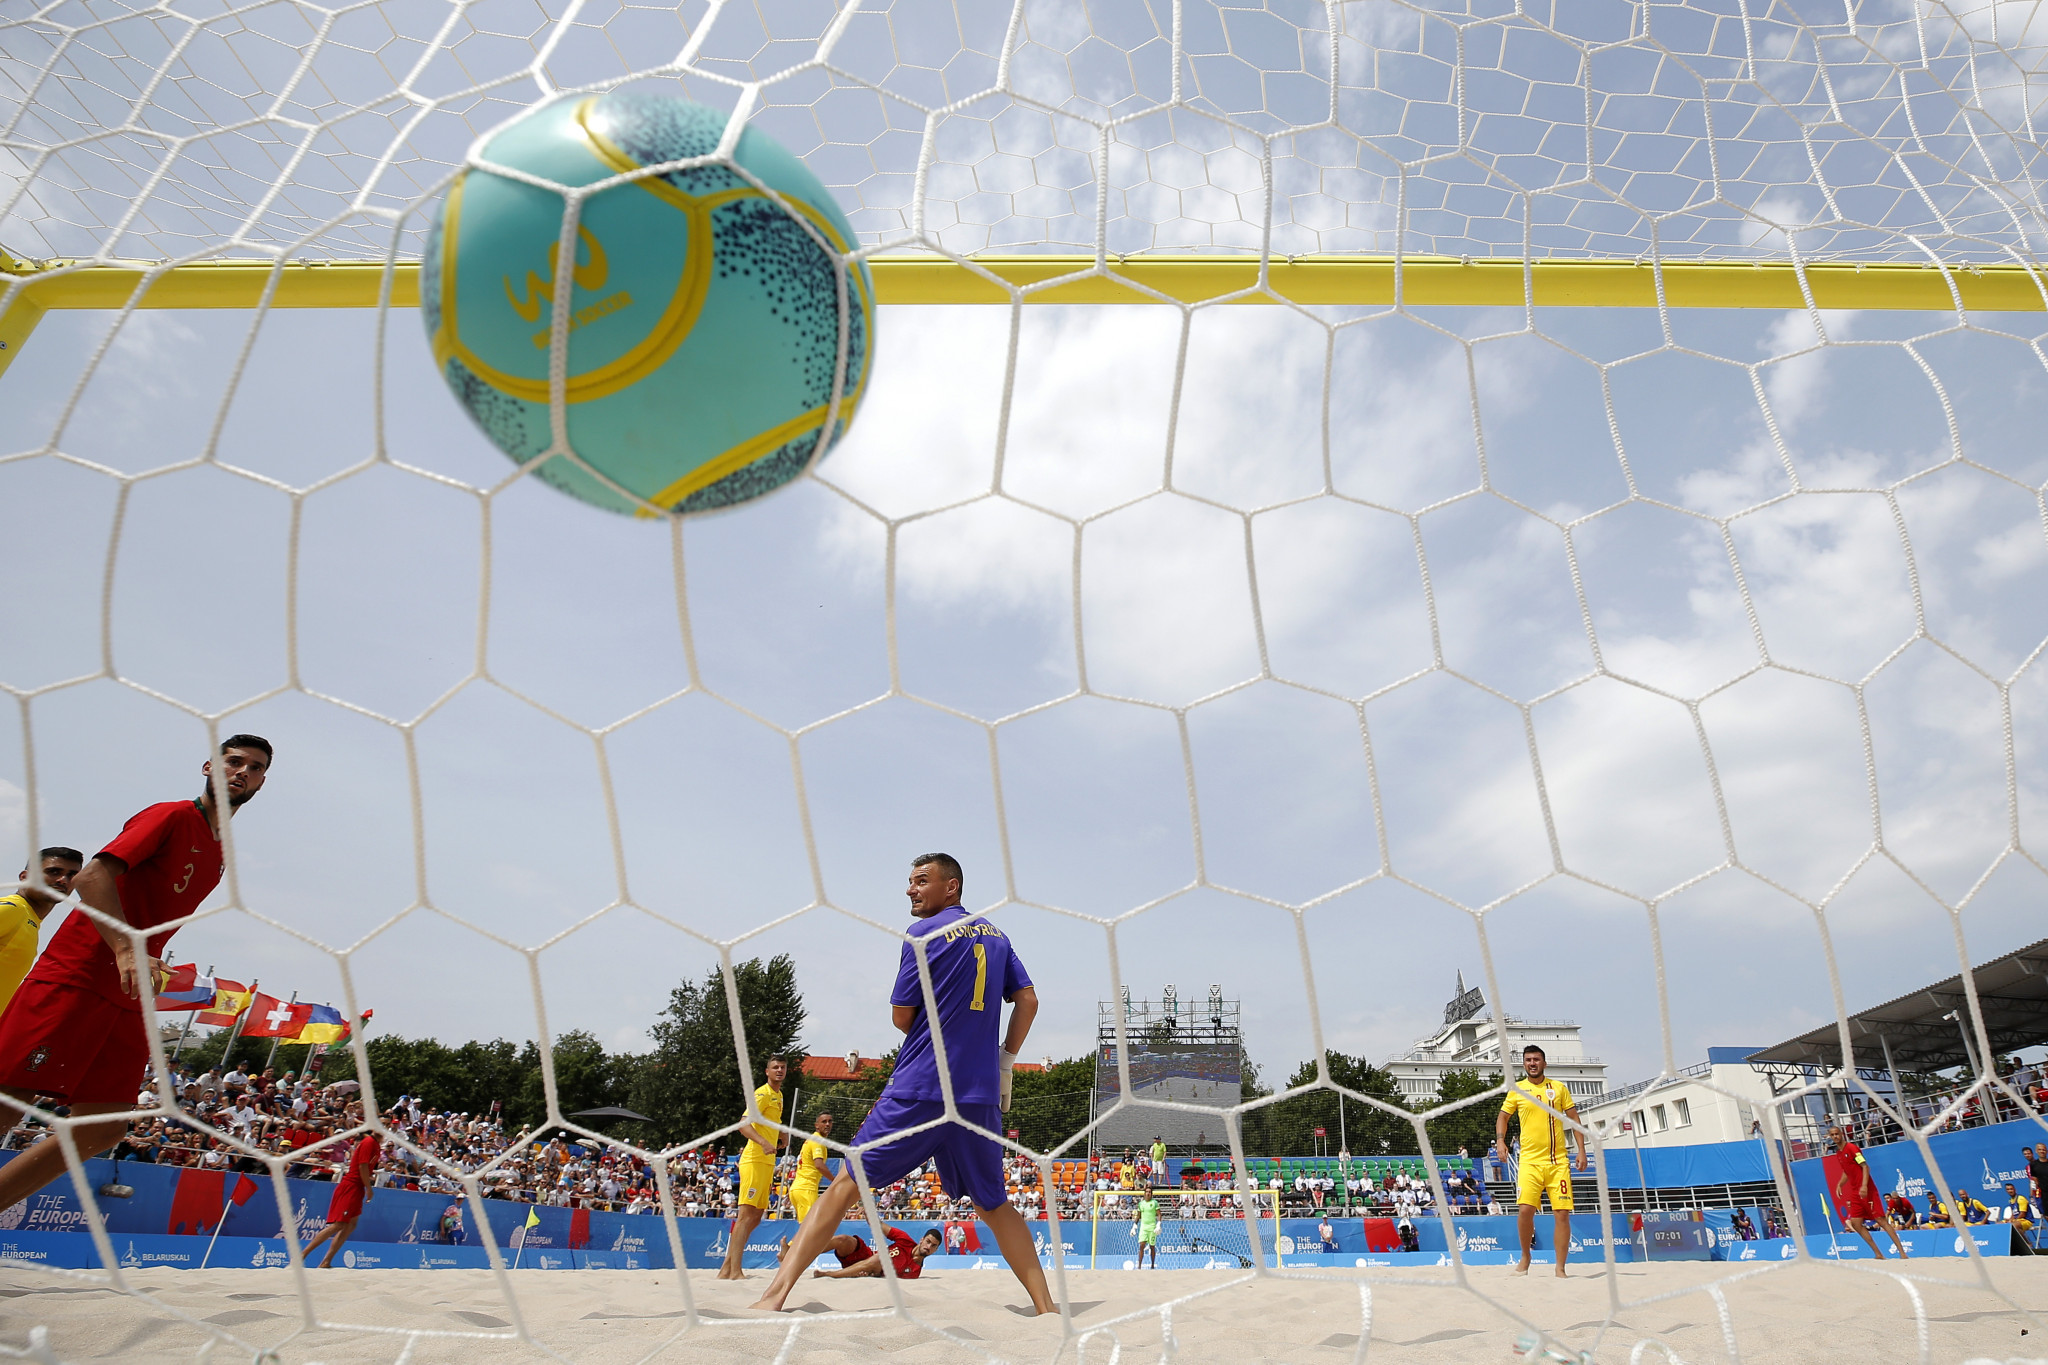 Beach soccer is also returning to the European Games at Kraków-Małopolska 2023 ©Getty Images